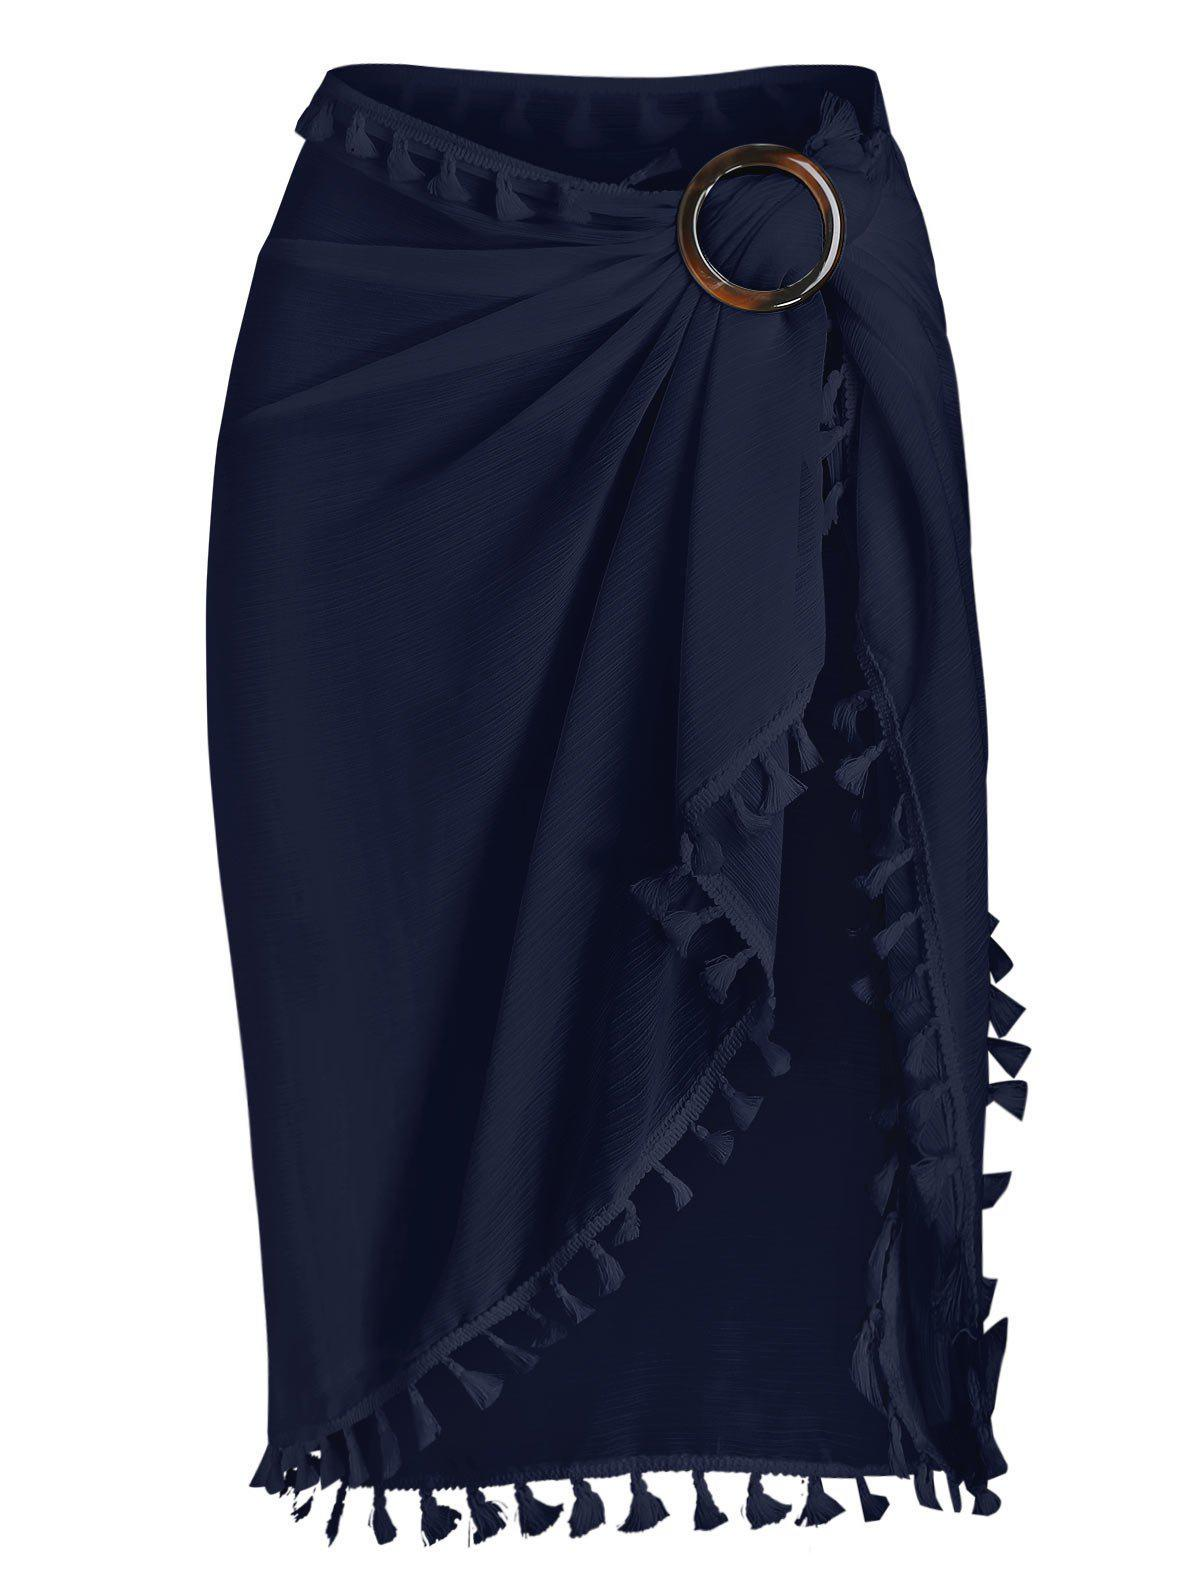 Tassel See Thru Wrap Sarong Cover Up Skirt - DEEP BLUE ONE SIZE